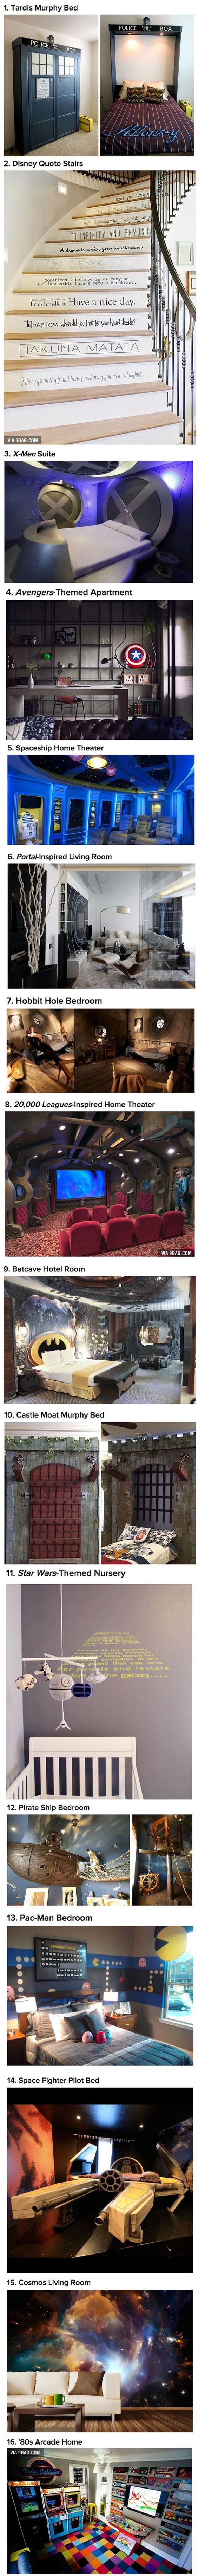 16 Geeky Interior Designs You'll Want To Have In Your House